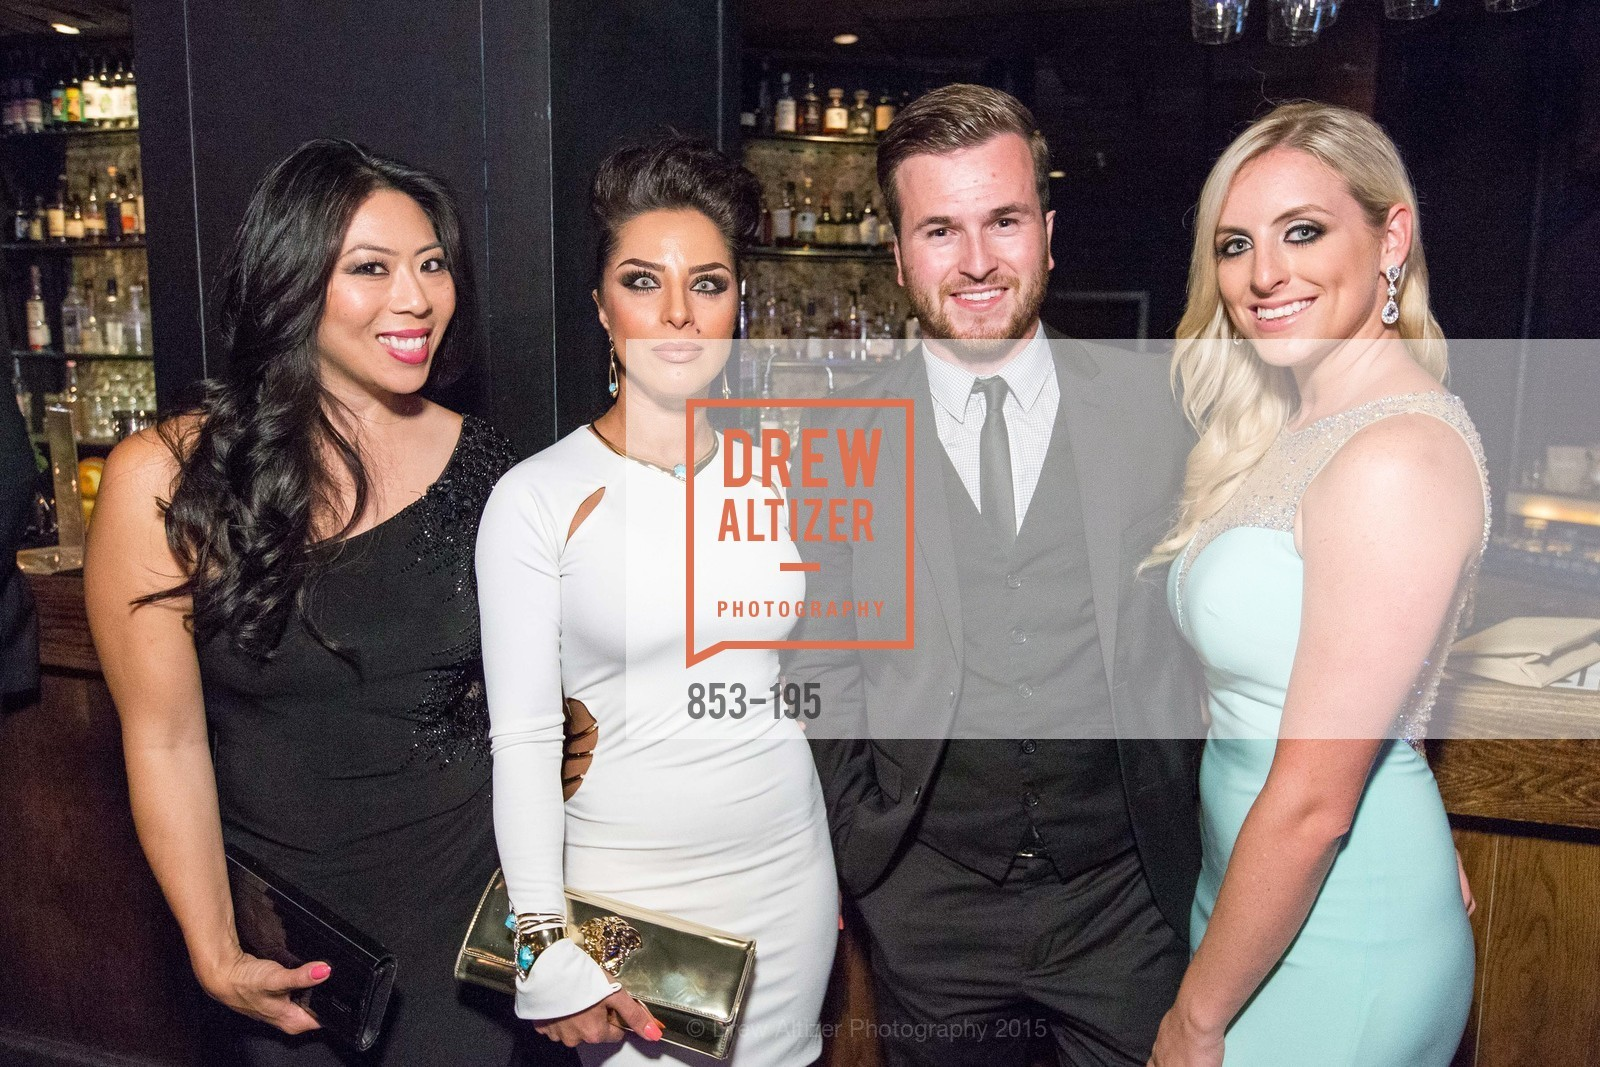 Joyce Chiu, Molly Noor, Kenan Slye, Stephanie Slye, Climb Real Estate and Sindeo Celebrate the Launch of Million Dollar Listing San Francisco, Local Edition San Francisco. 691 Market St, July 8th, 2015,Drew Altizer, Drew Altizer Photography, full-service event agency, private events, San Francisco photographer, photographer California